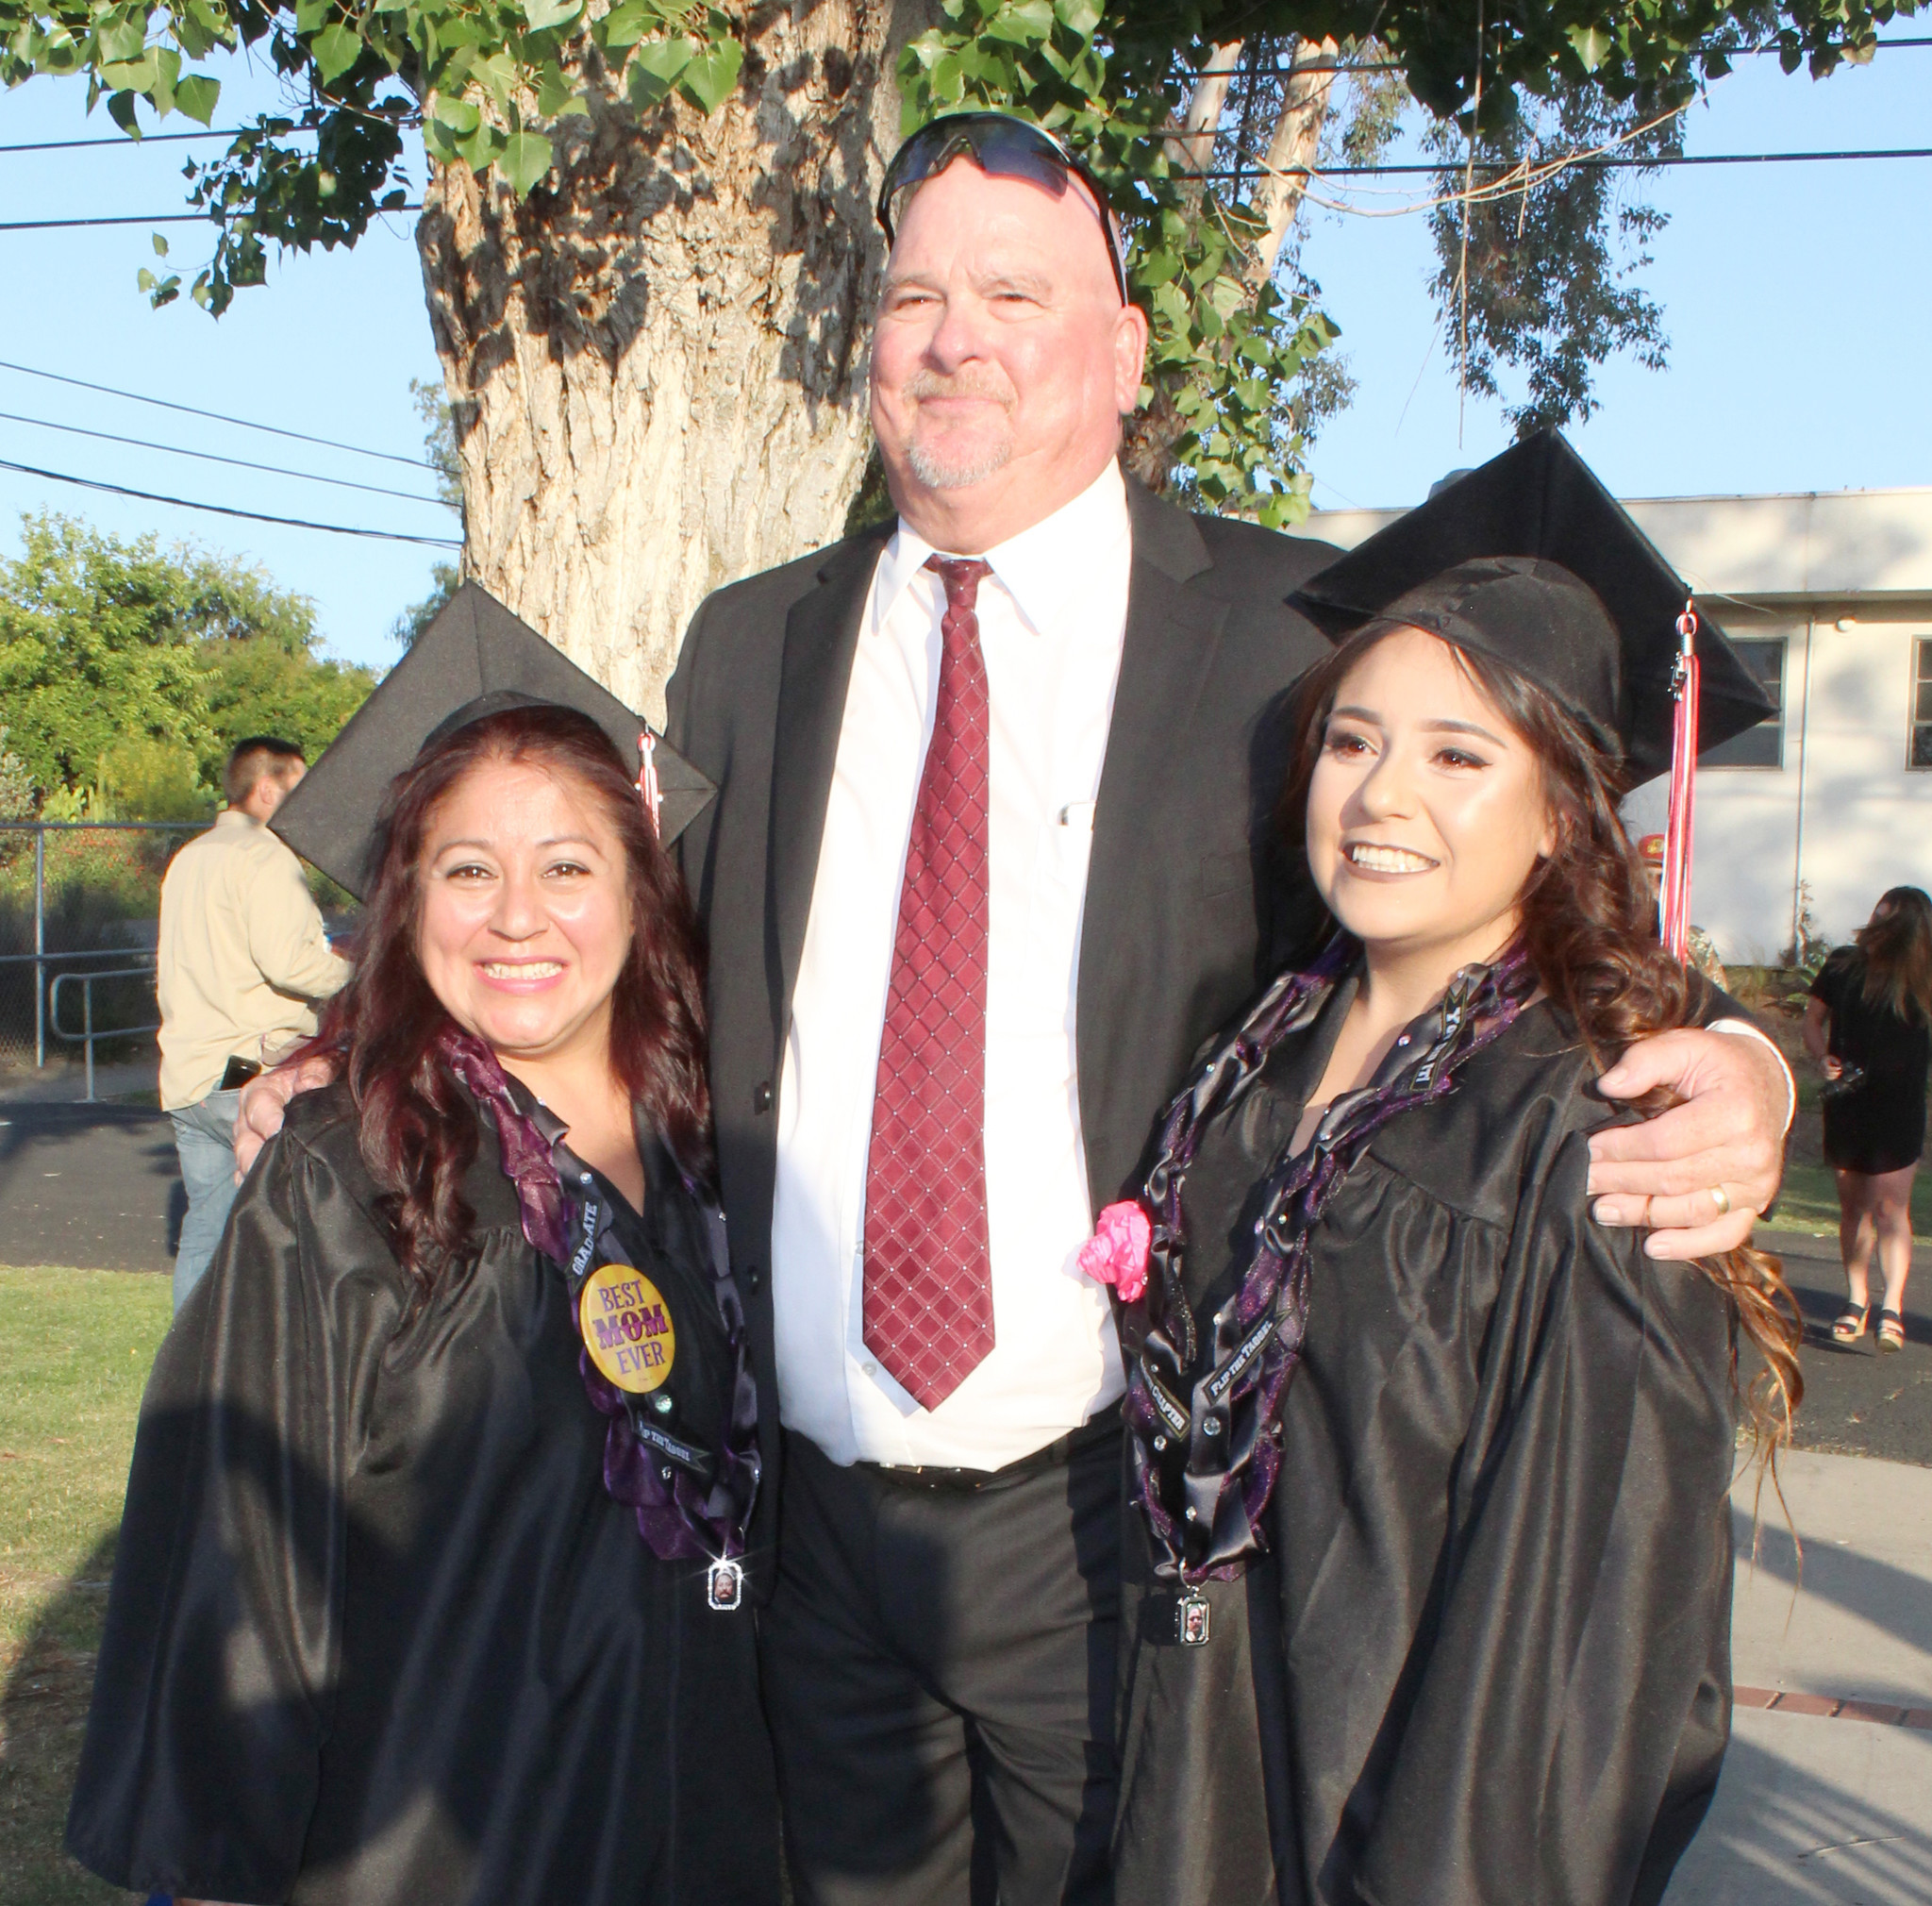 Dave Lohman congratulates mother and daughter Yolanda and thalia Cervantes, who graduated high school together in 2017.